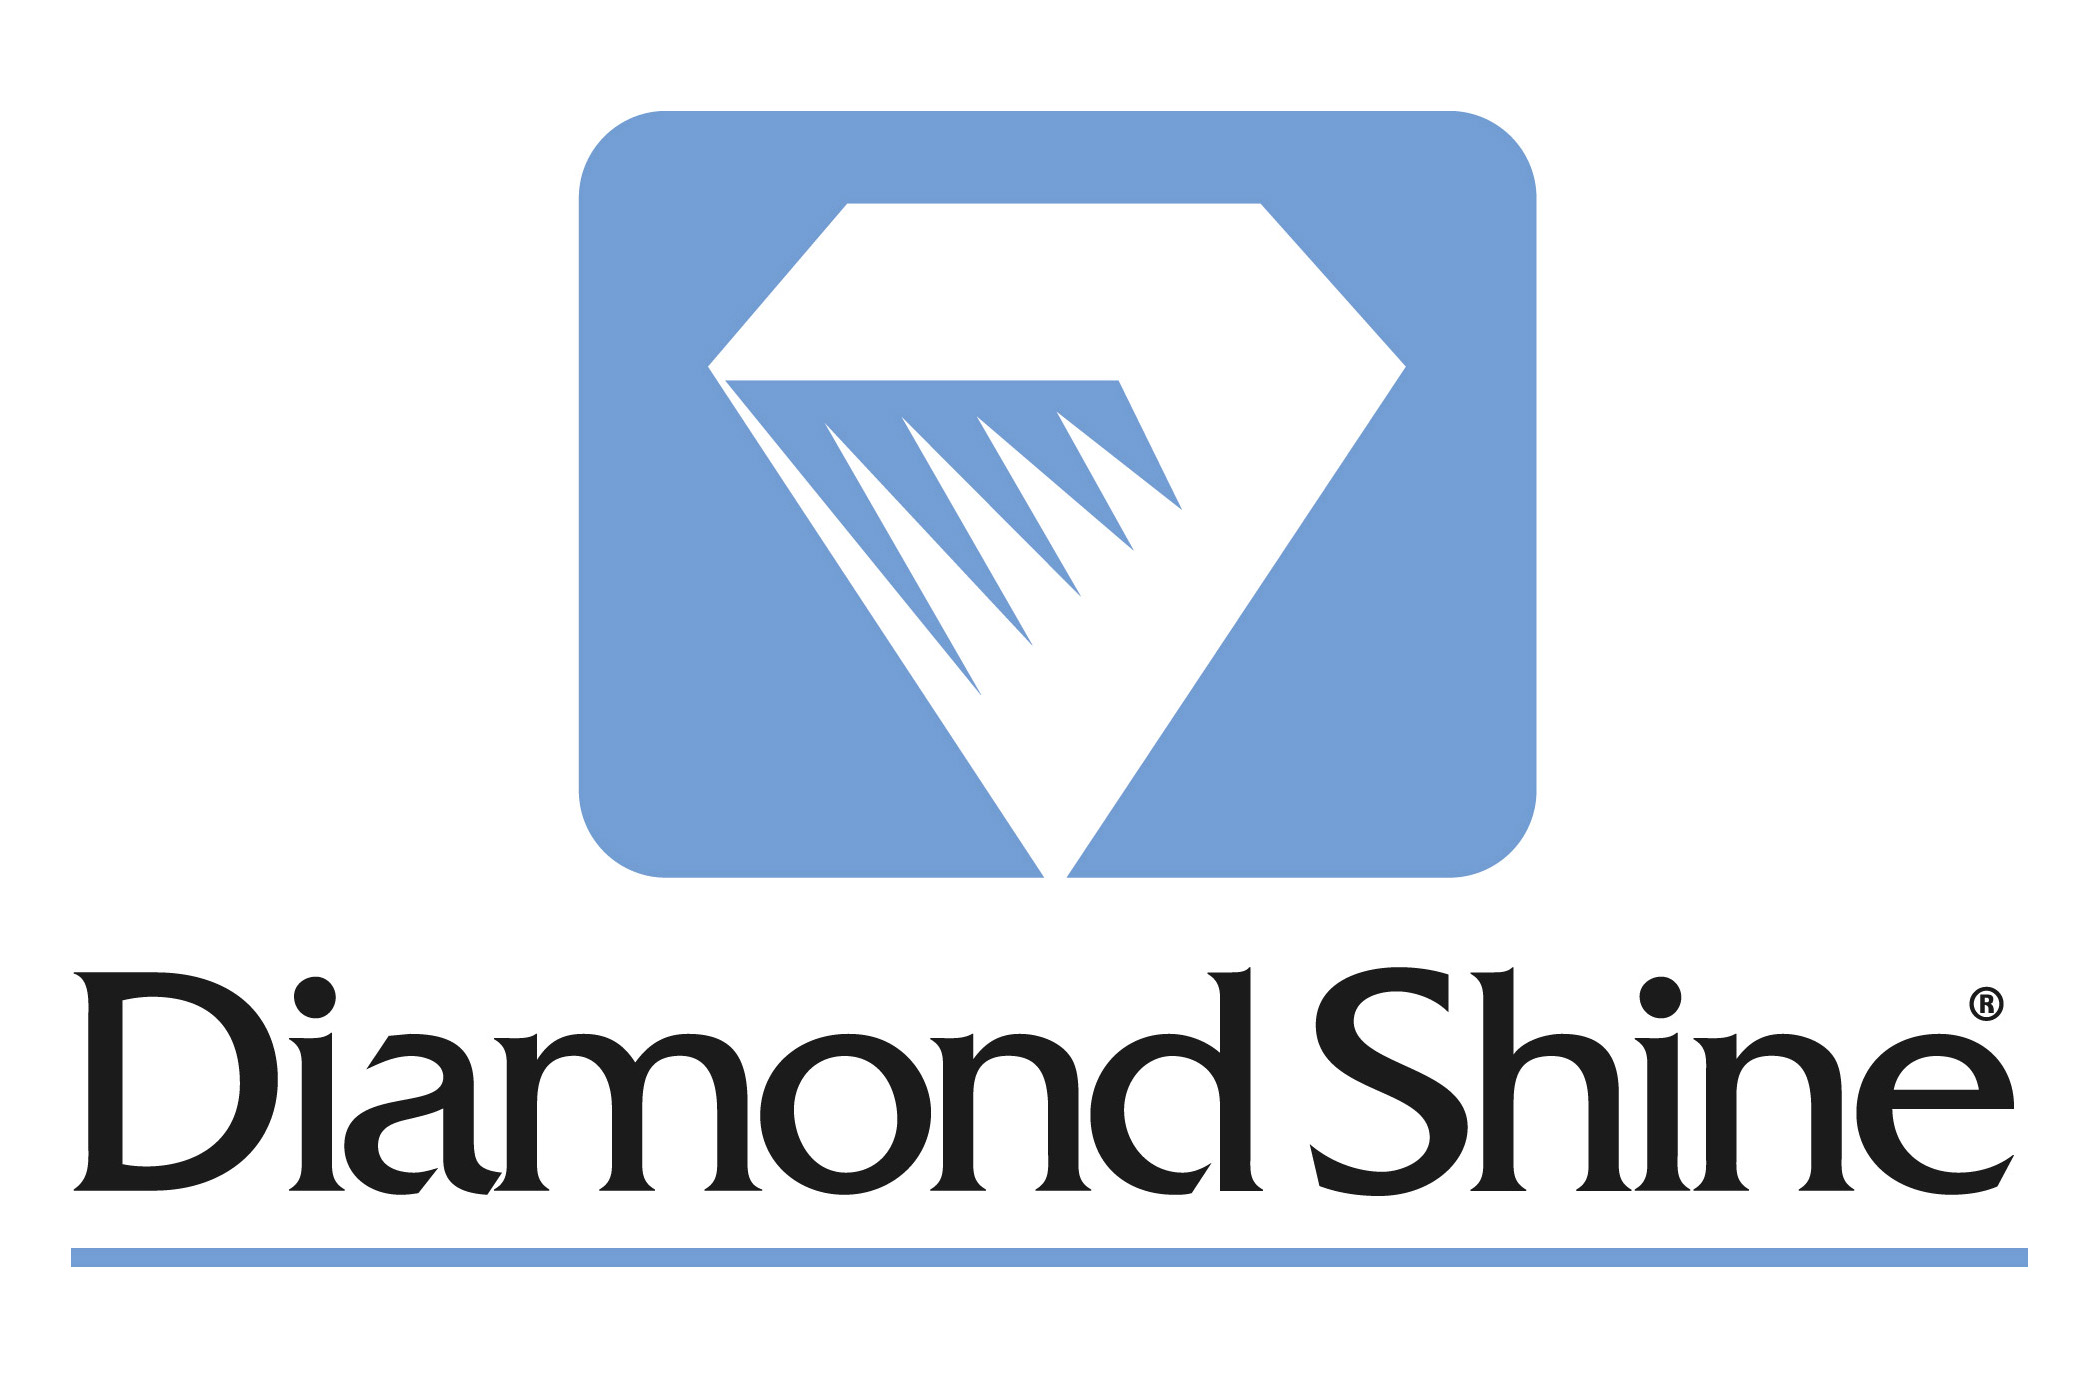 Diamond Shine